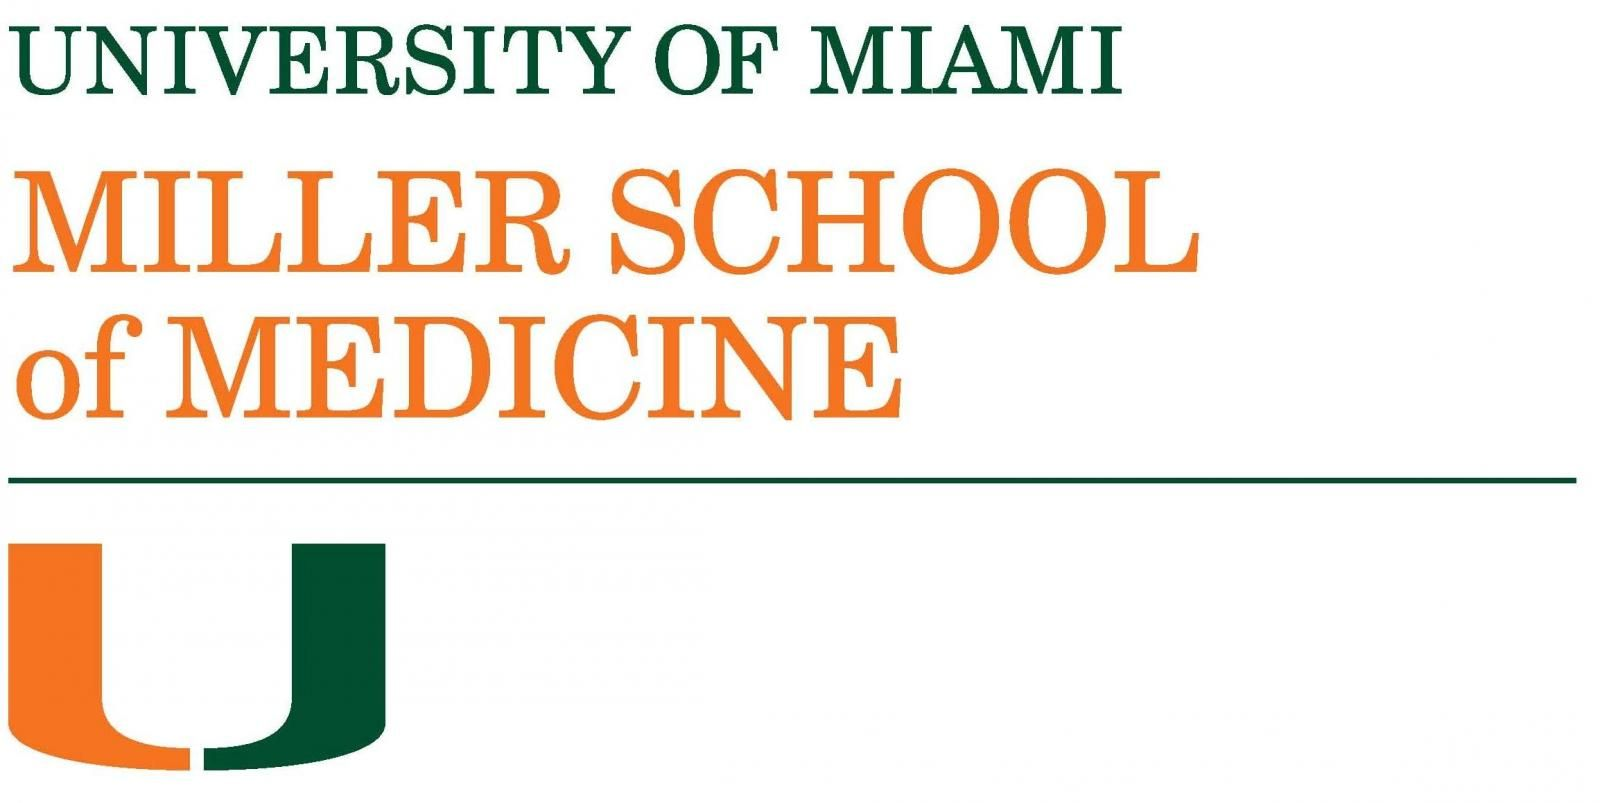 University of Miami-Miller School of Medicine